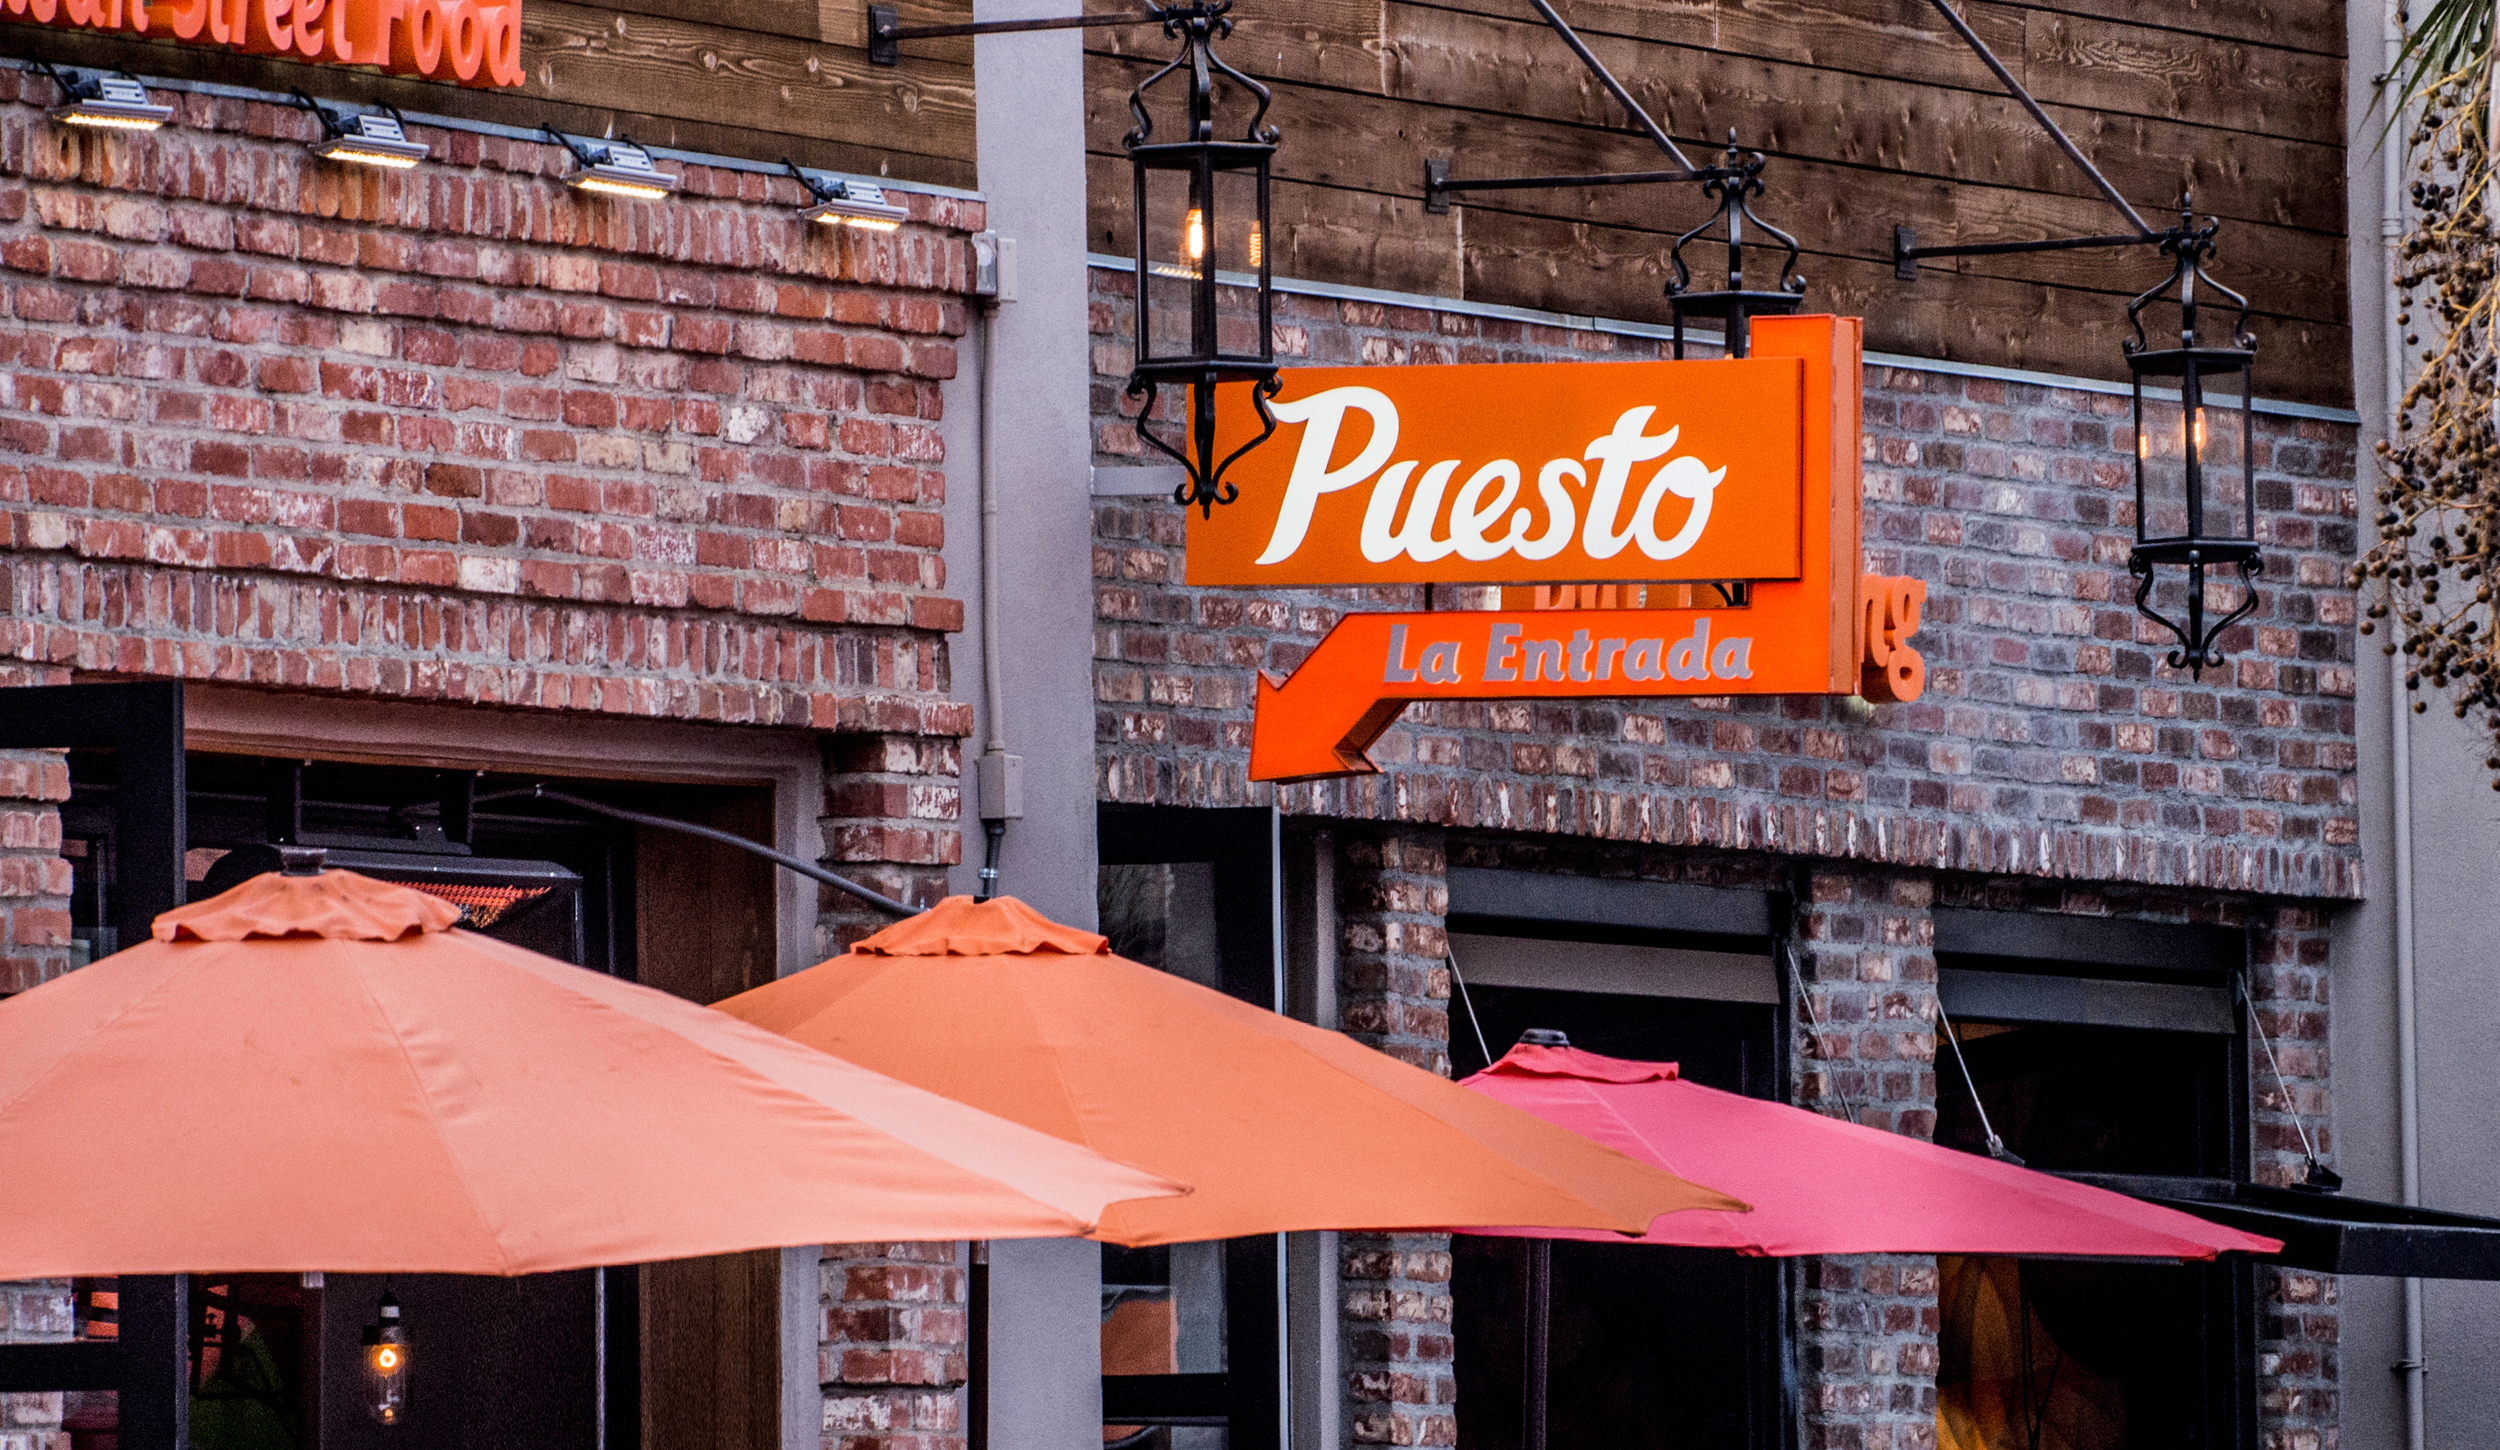 Puesto Mexican Street Food Restaurant, Downtown La Jolla